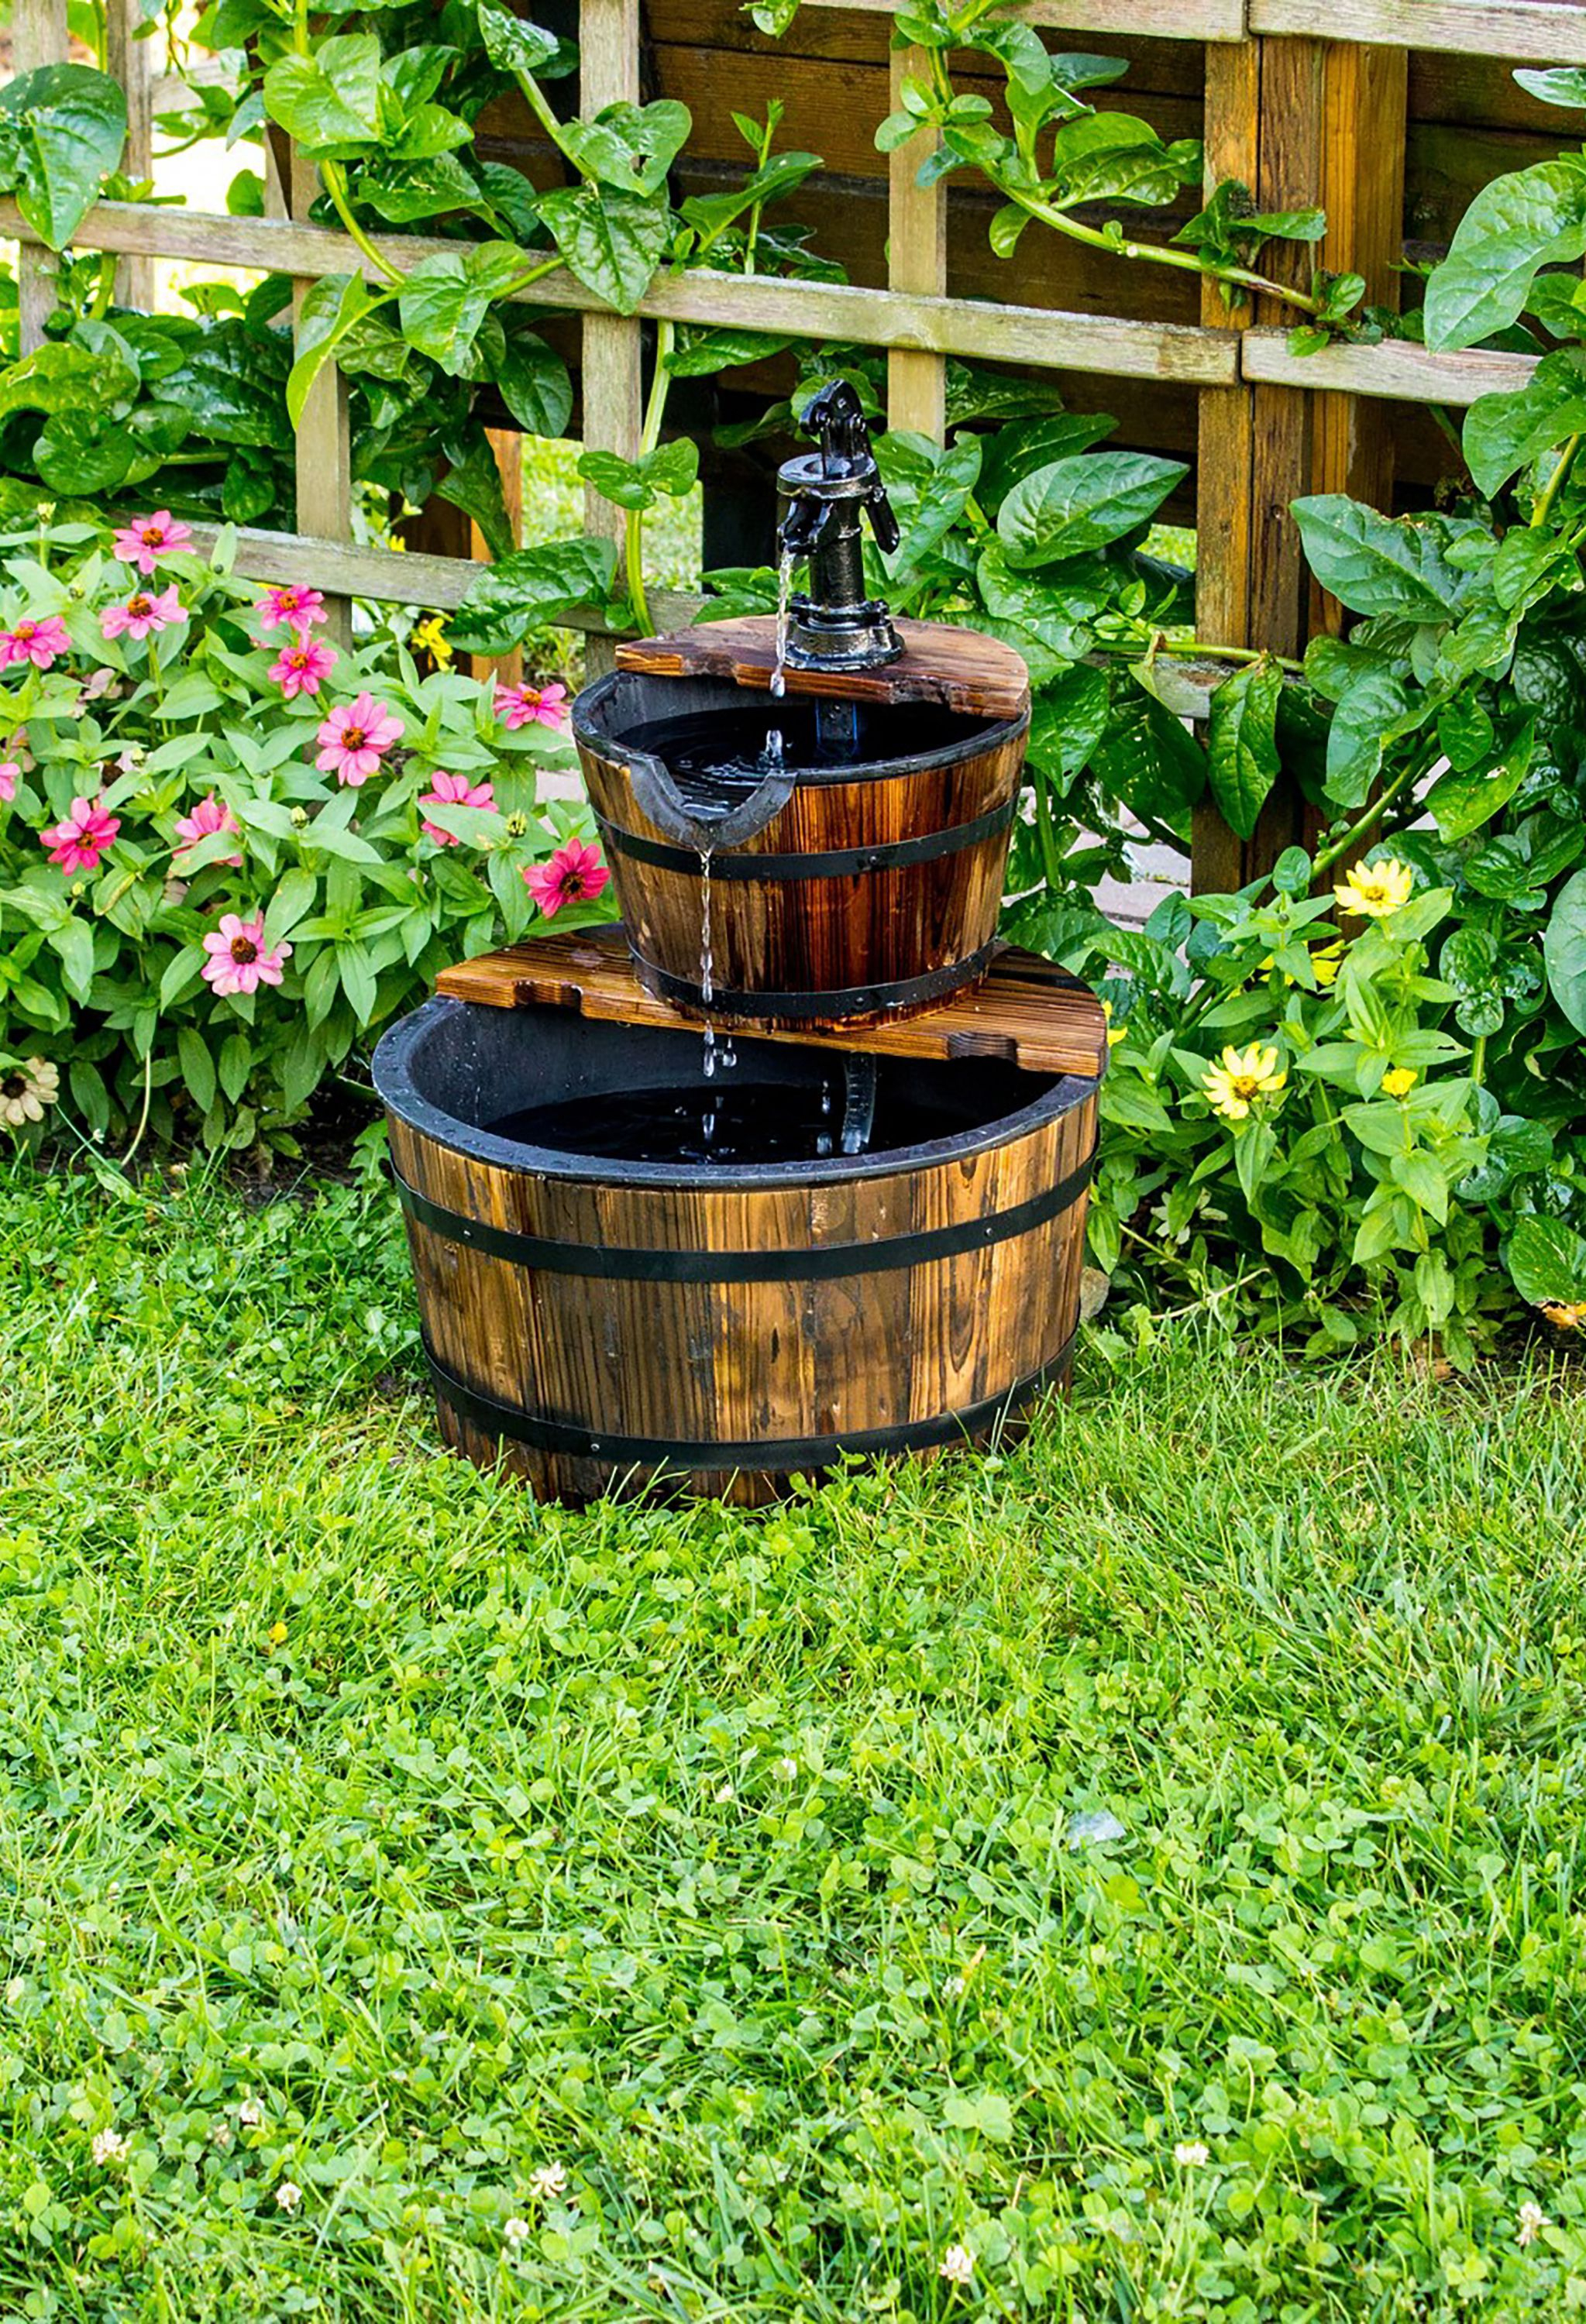 22 Outdoor Fountain Ideas How To Make A Garden Fountain For Your regarding 13 Smart Initiatives of How to Craft Backyard Water Fountains Ideas